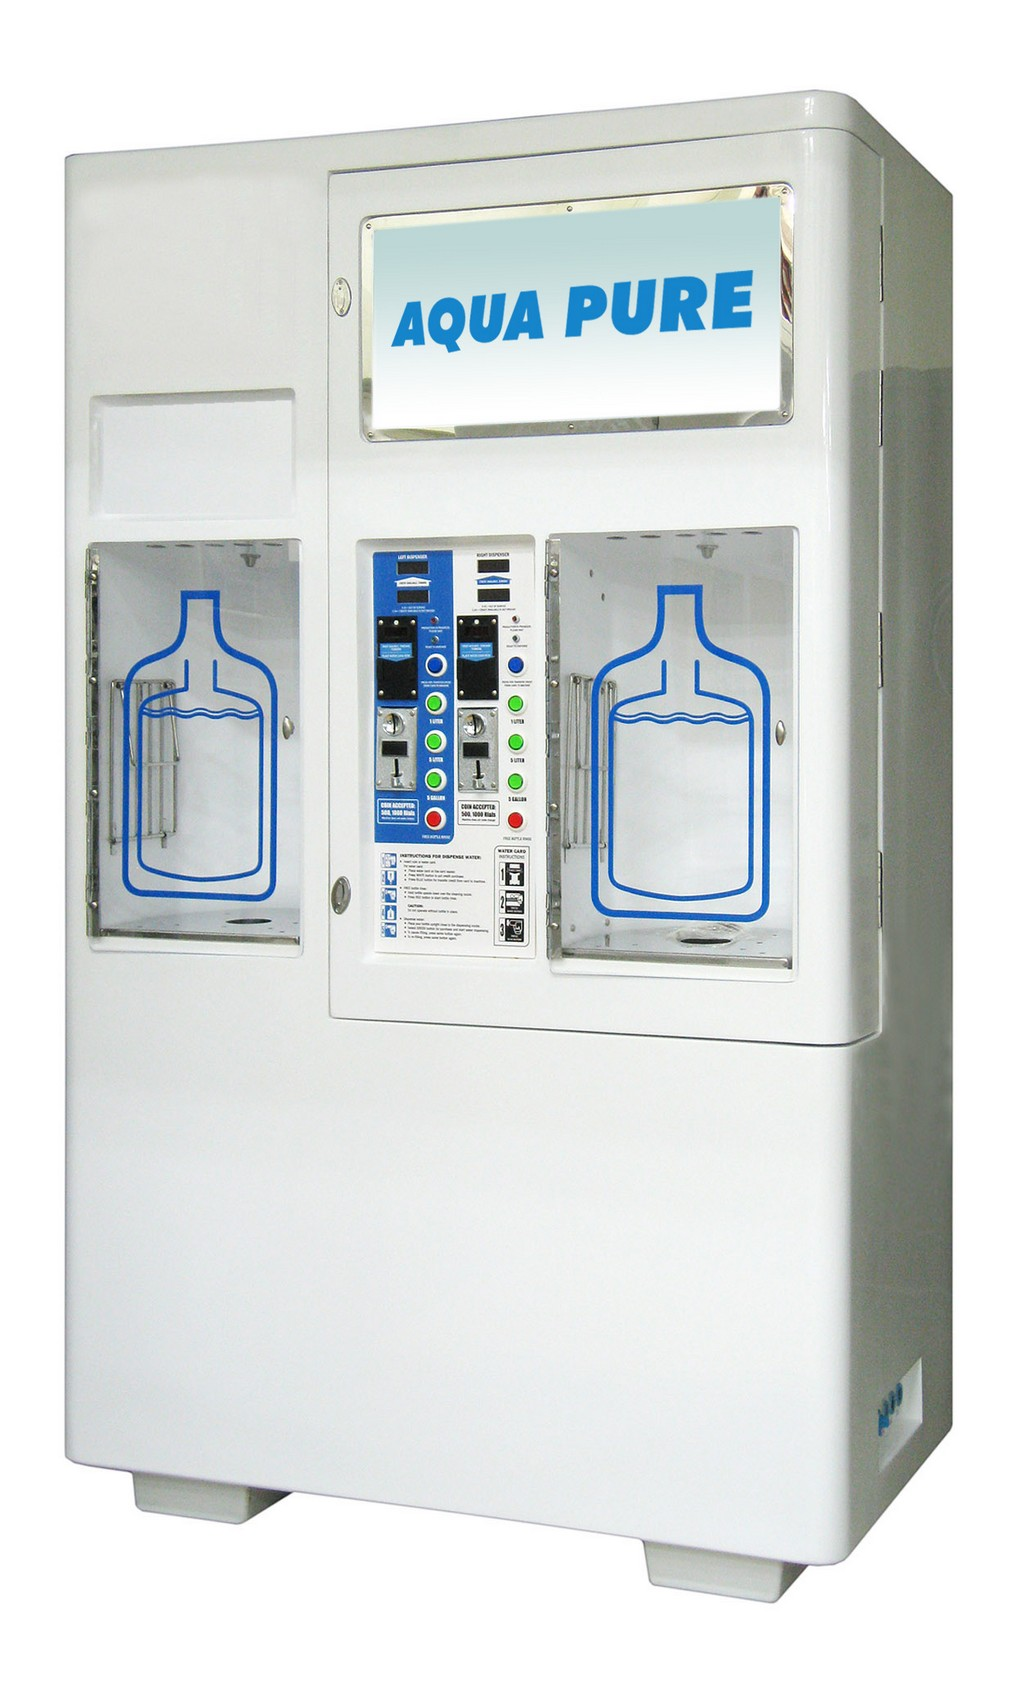 vending machine suppliers, vending machine business, gatorade vending machine